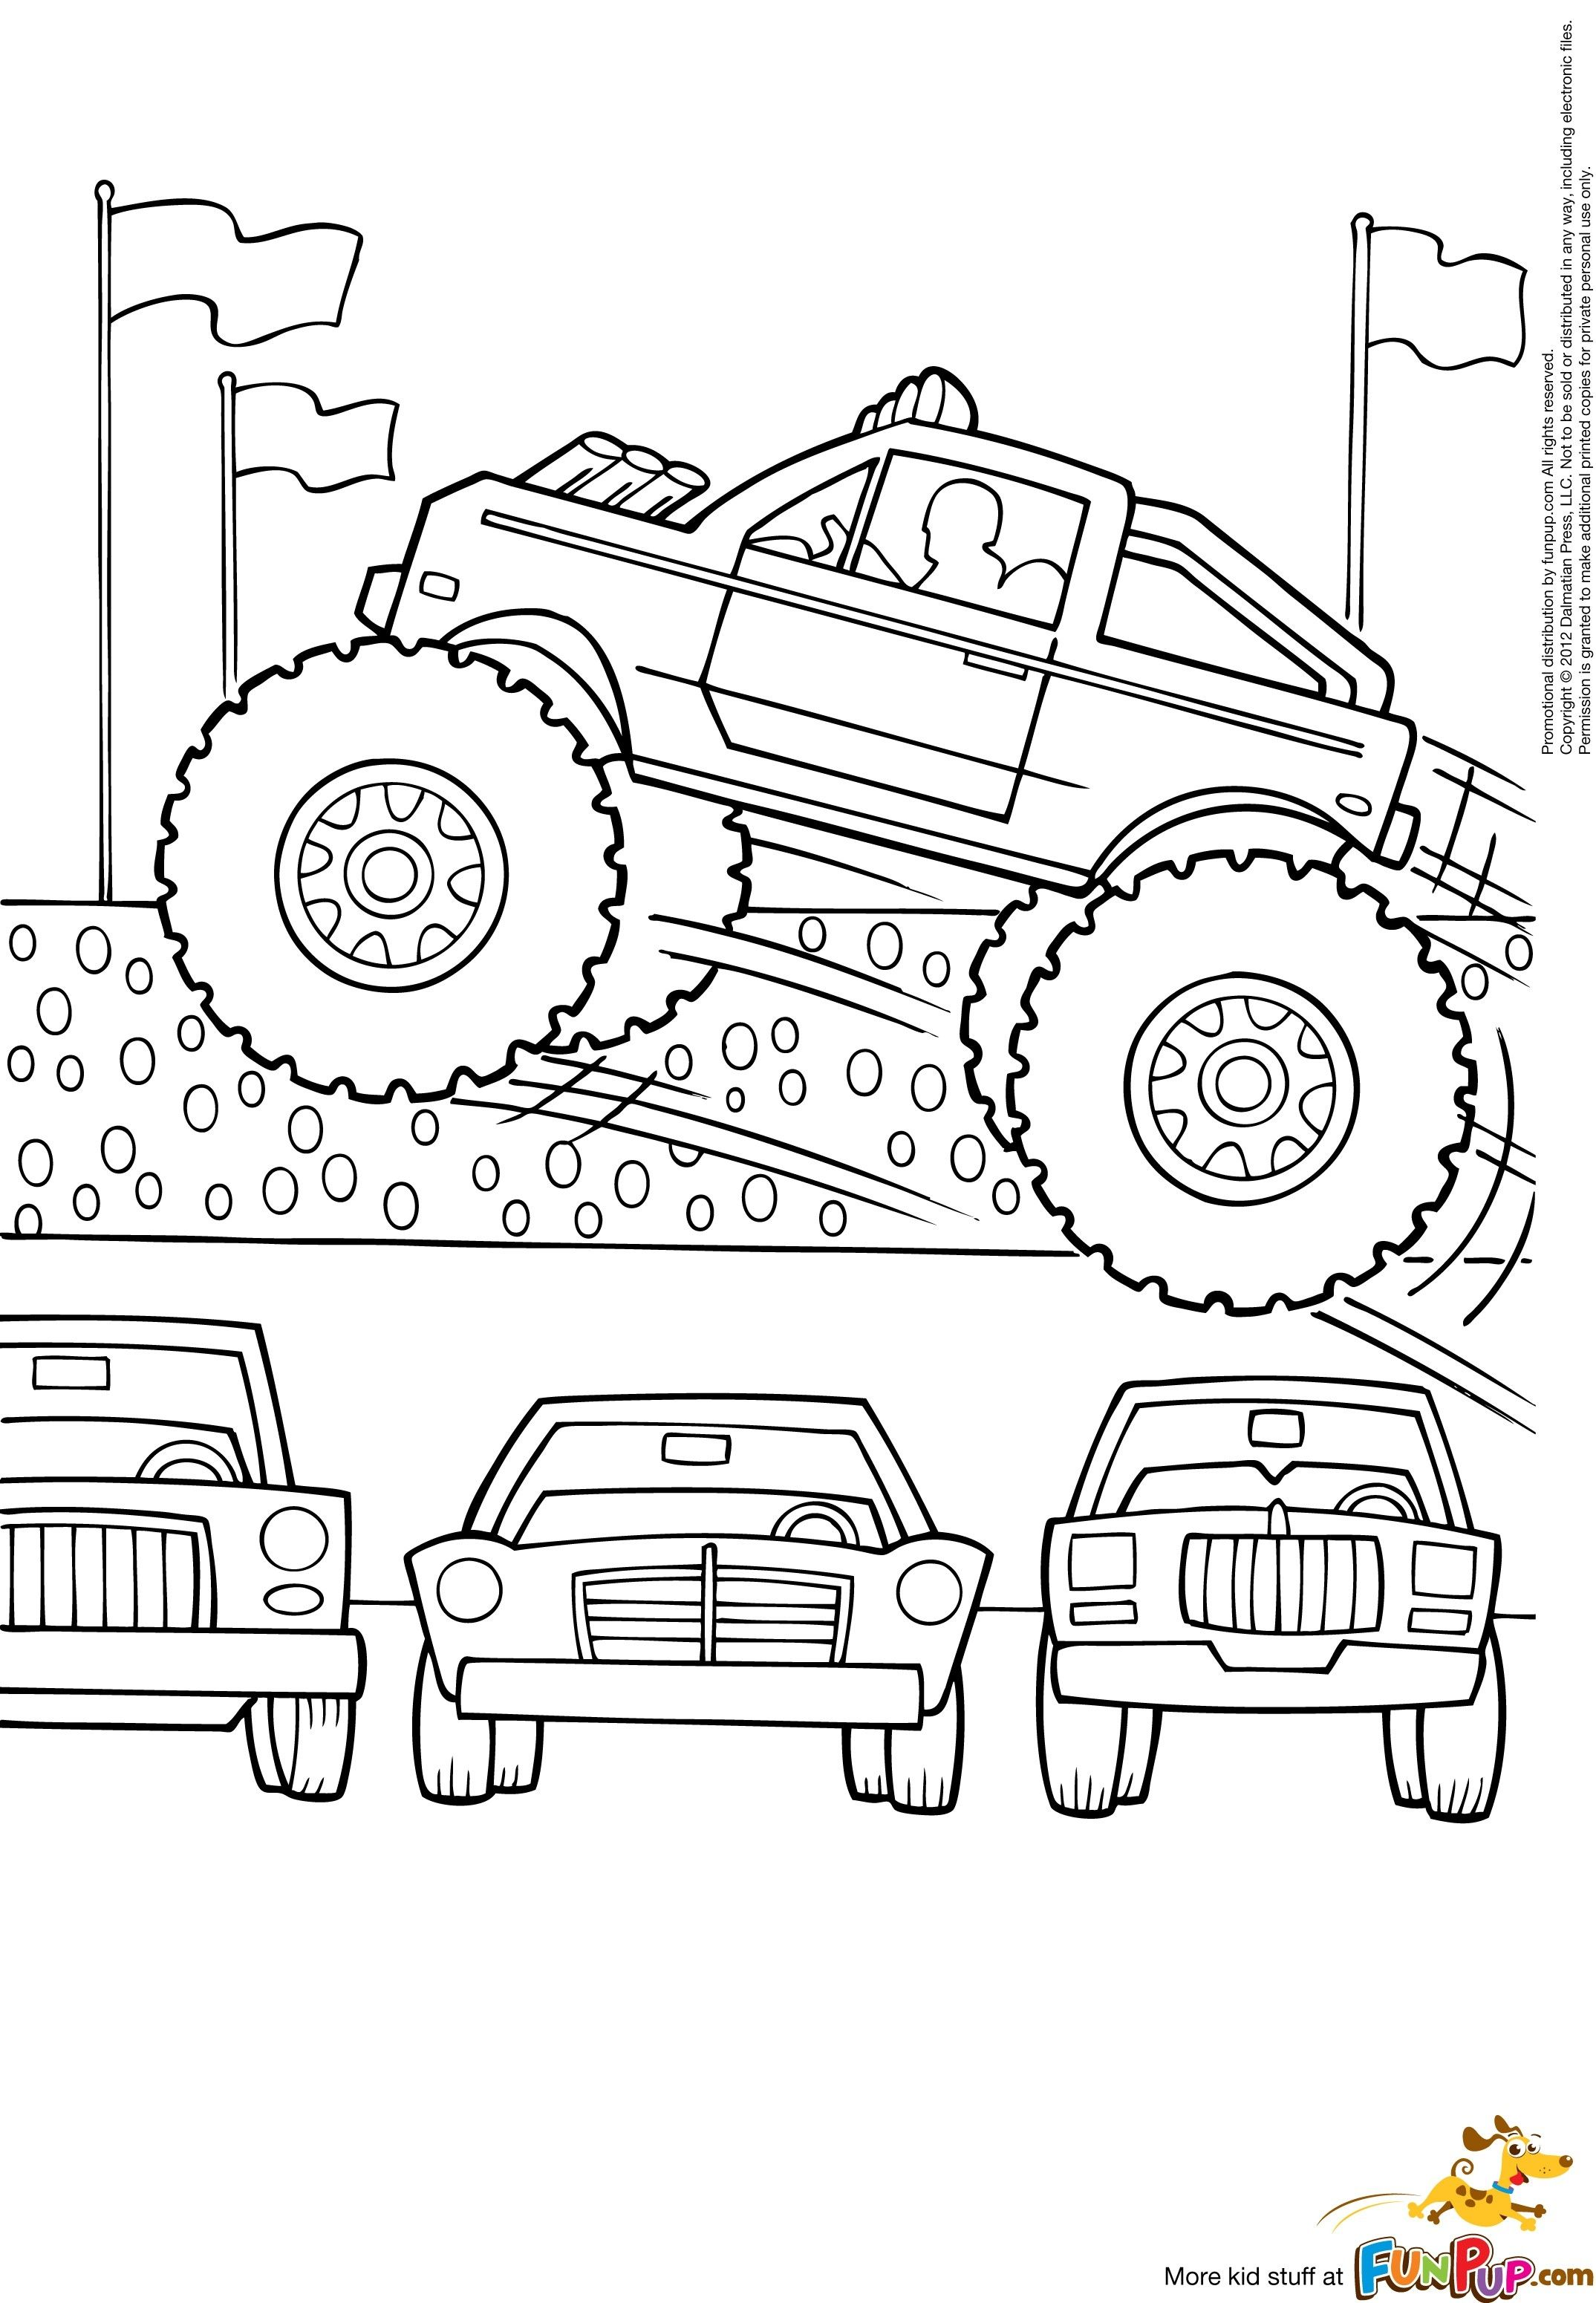 Coloring Pages Of Cars And Trucks Unique Grave Digger Monster